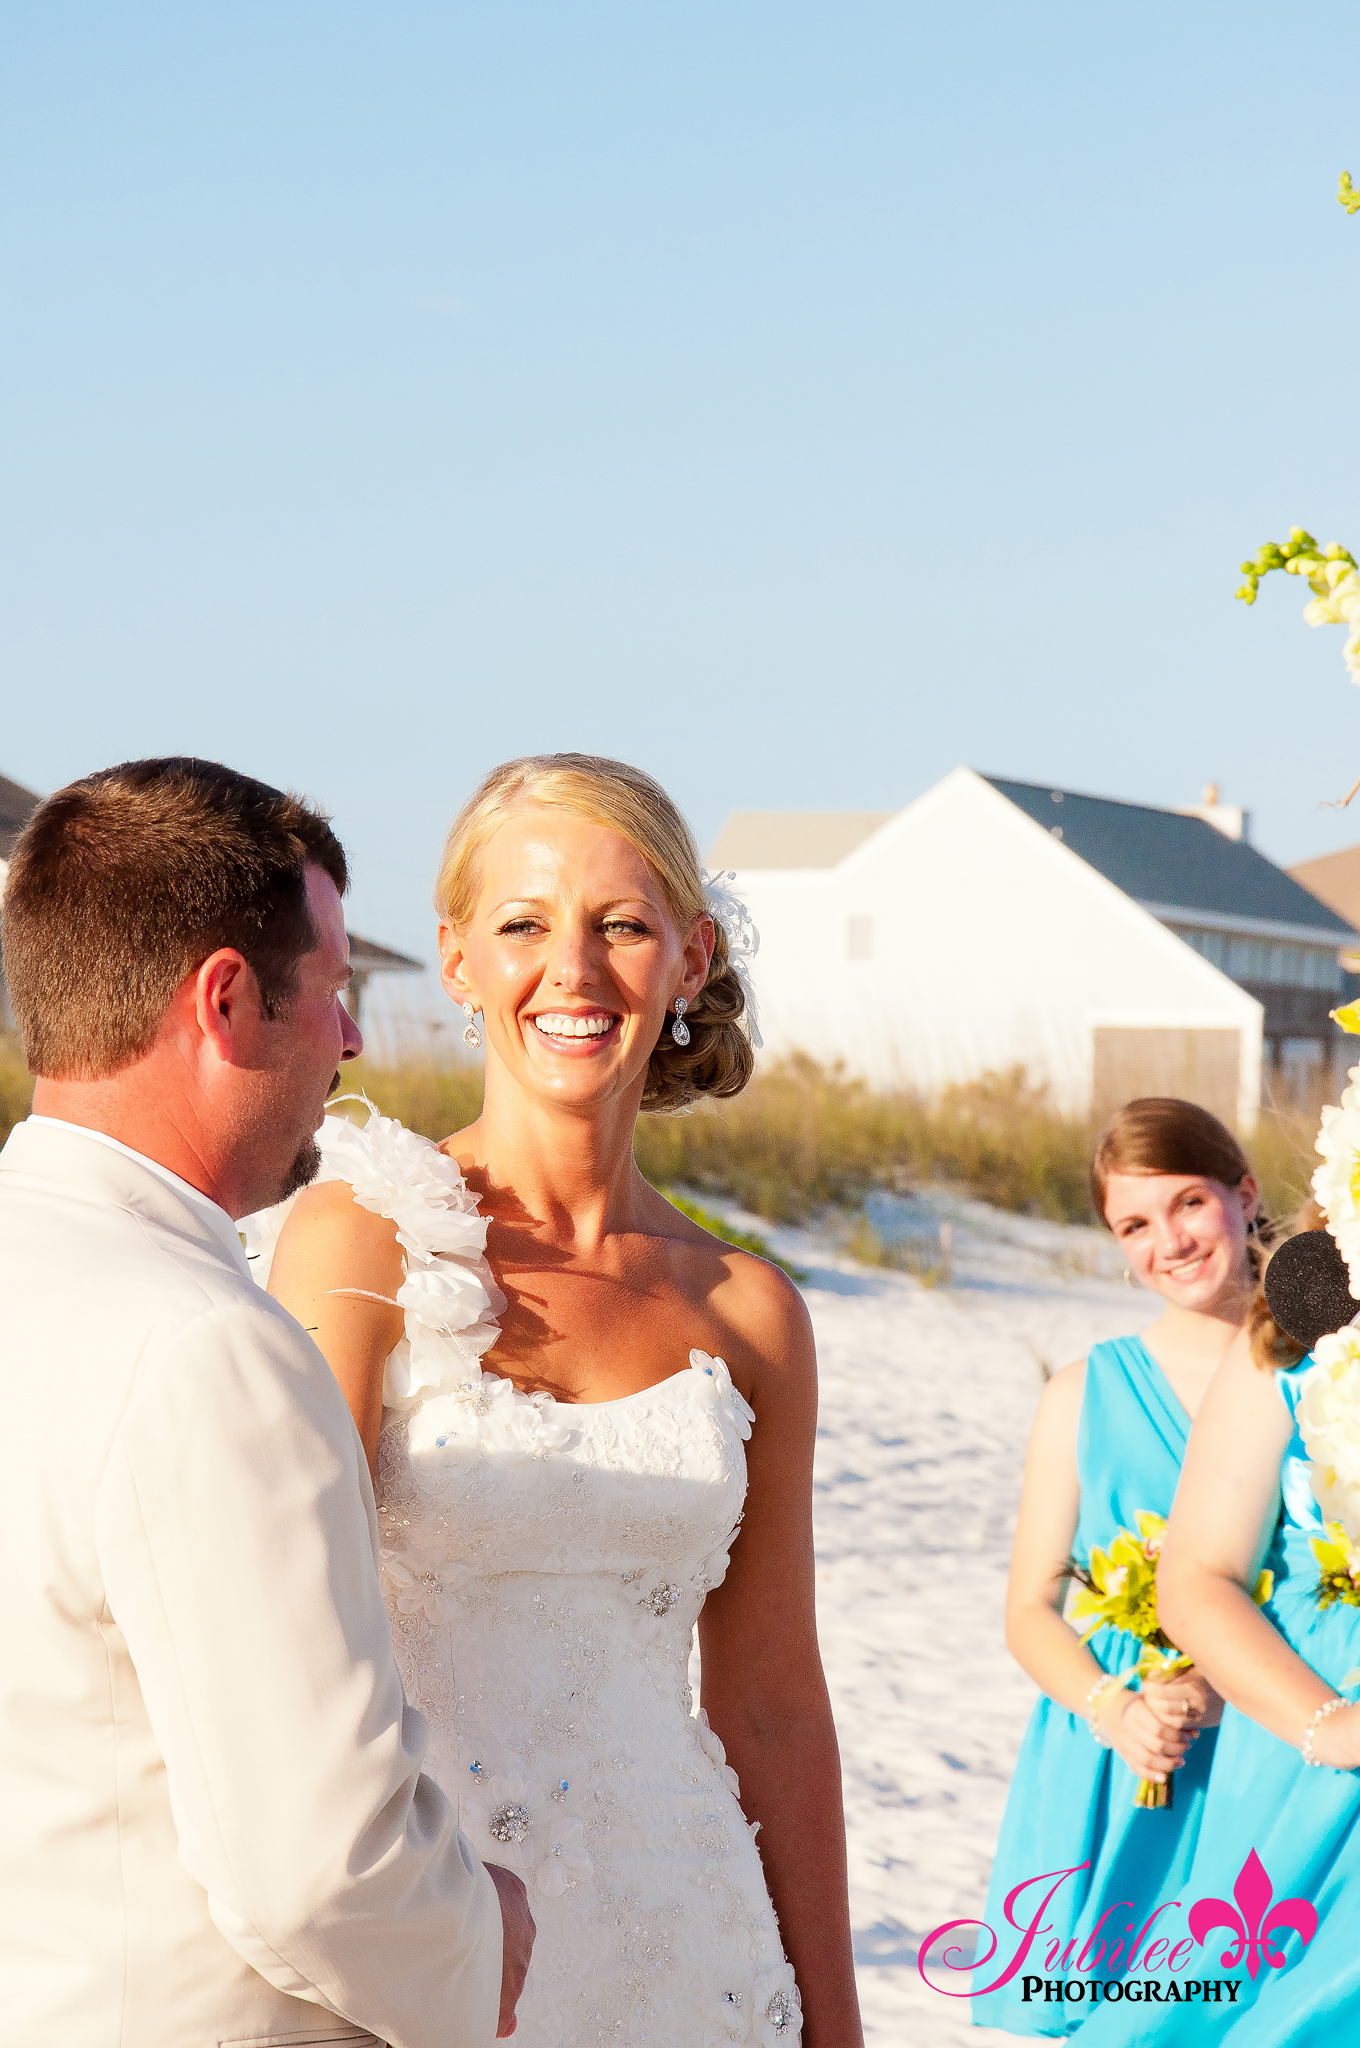 05052012 MCWedding2 0549 Misha + Chad   Pensacola Beach Wedding